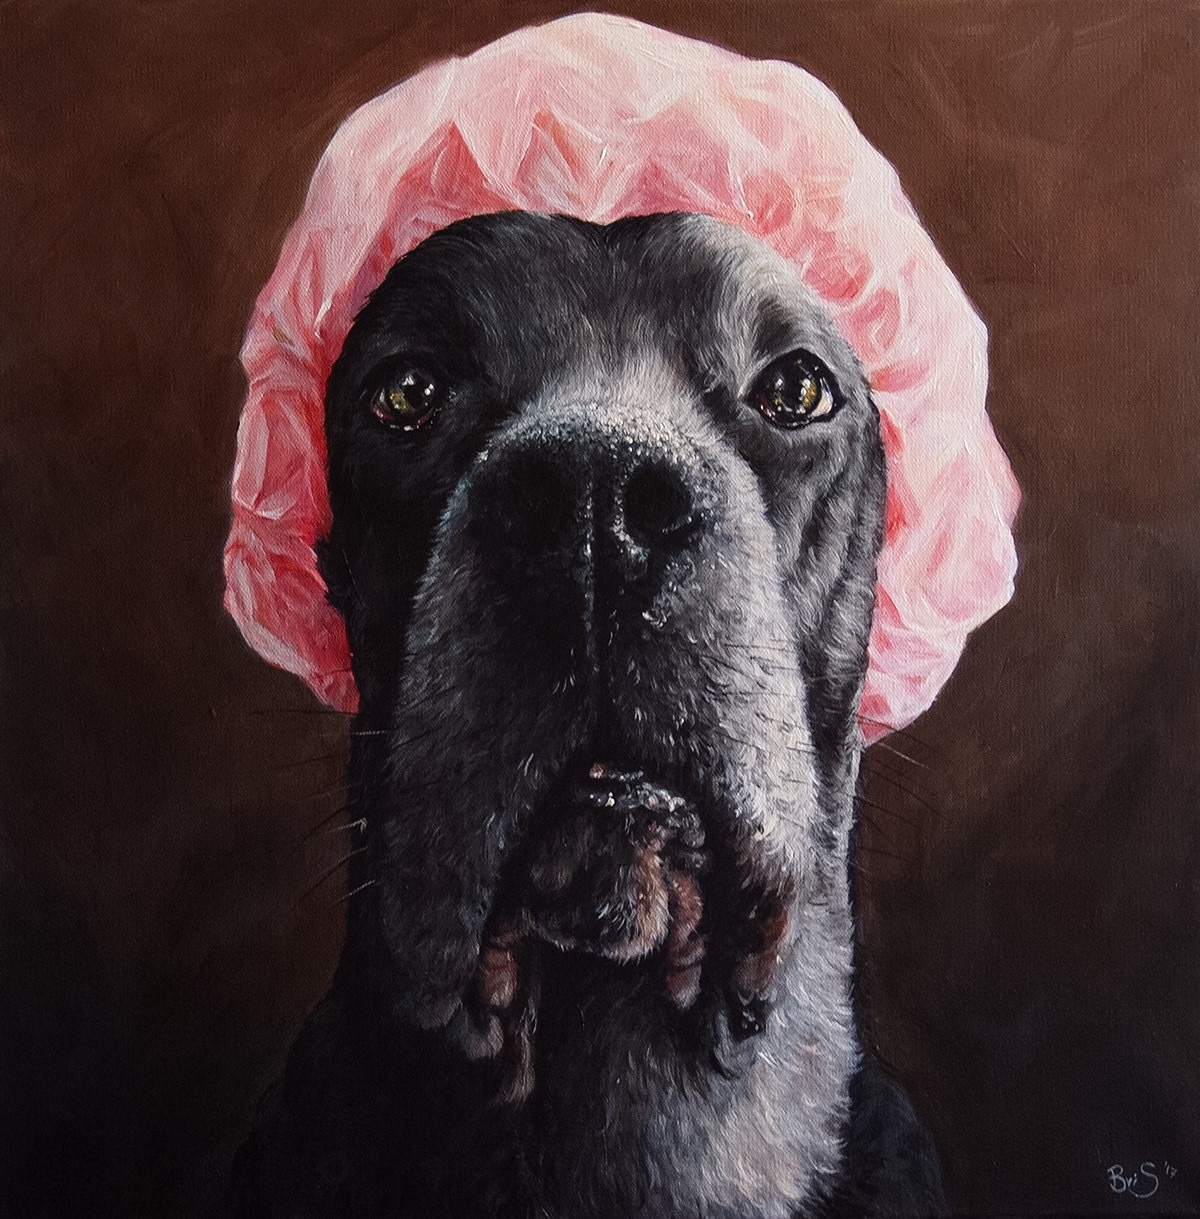 Large 18 inch portrait of a dog